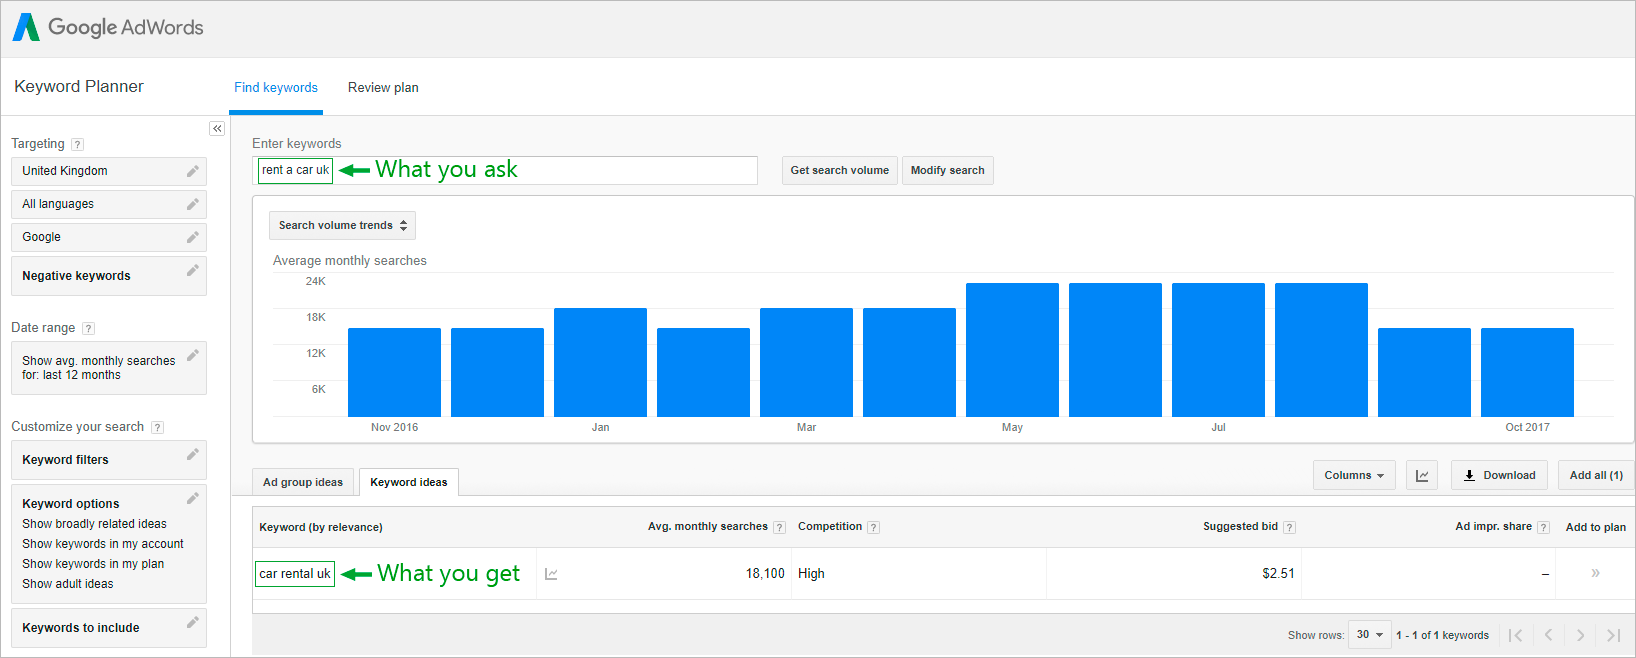 Keyword-Planner-Google-AdWords2